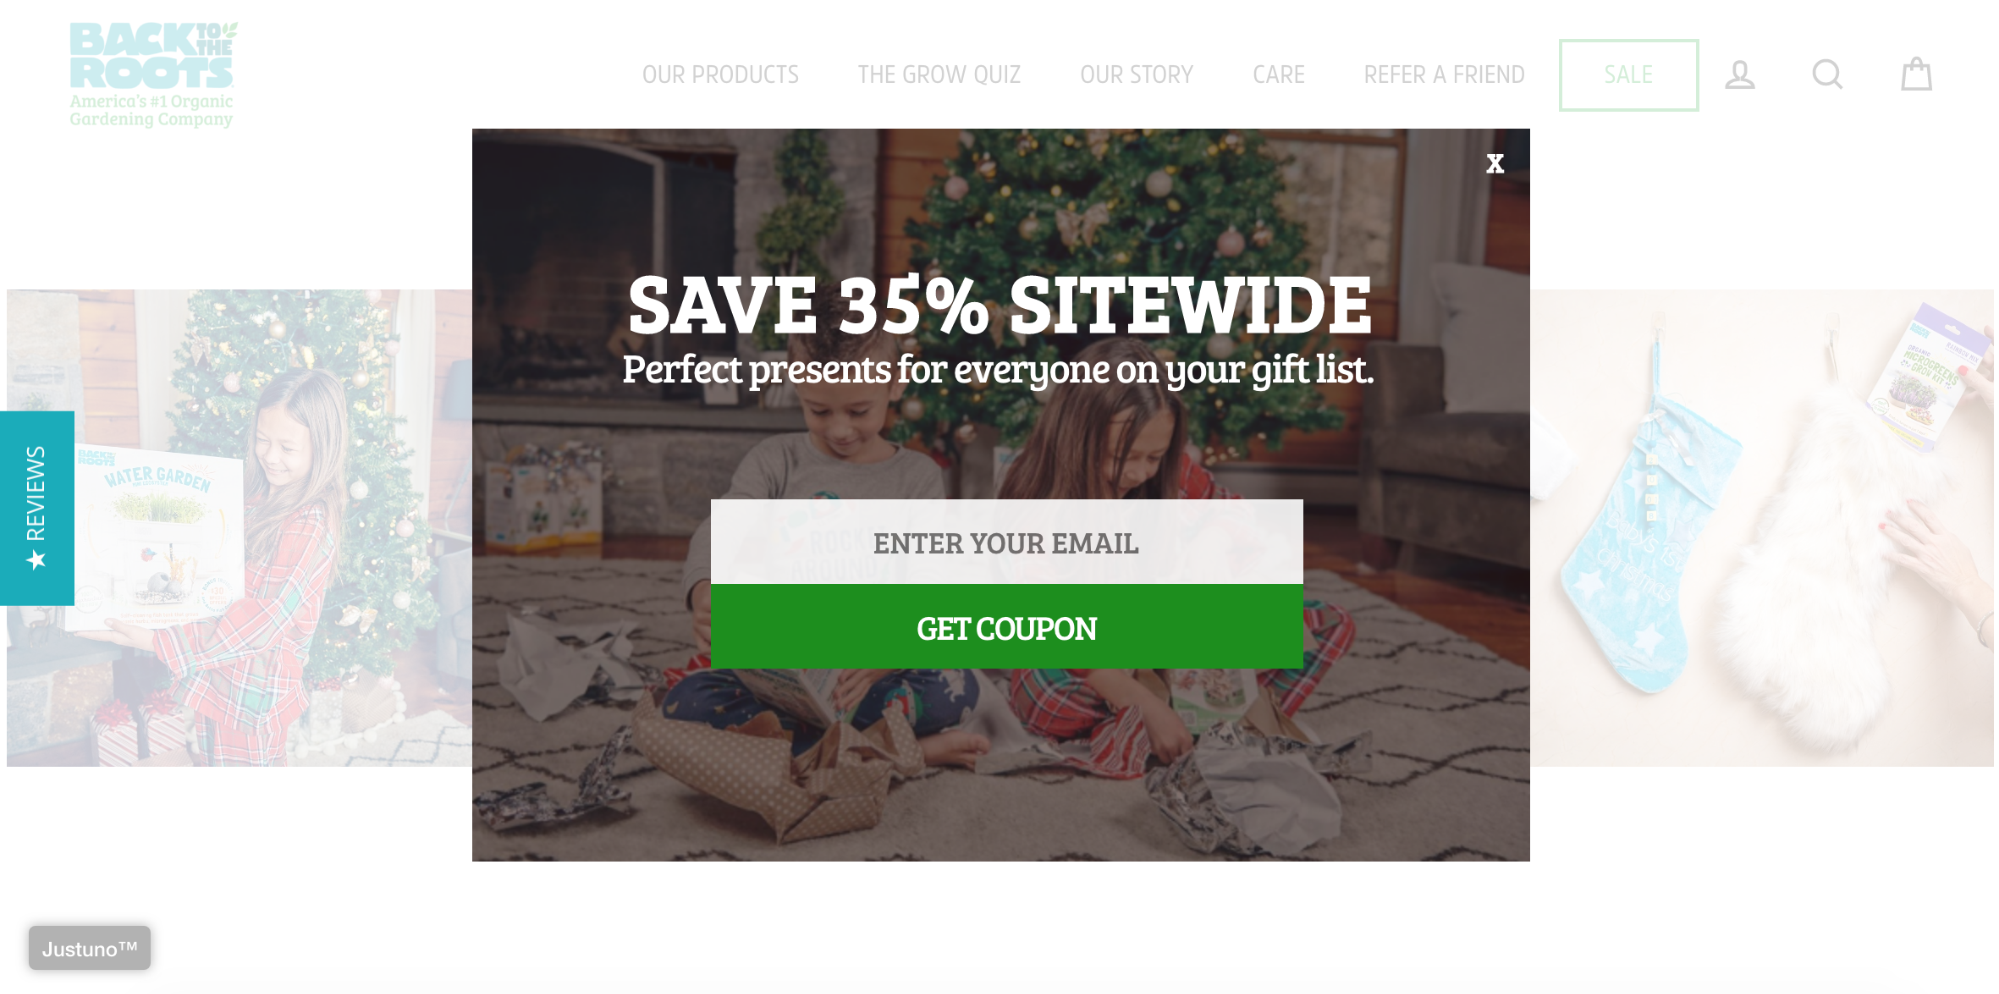 A lead generation form offering a discount on Back to The Roots